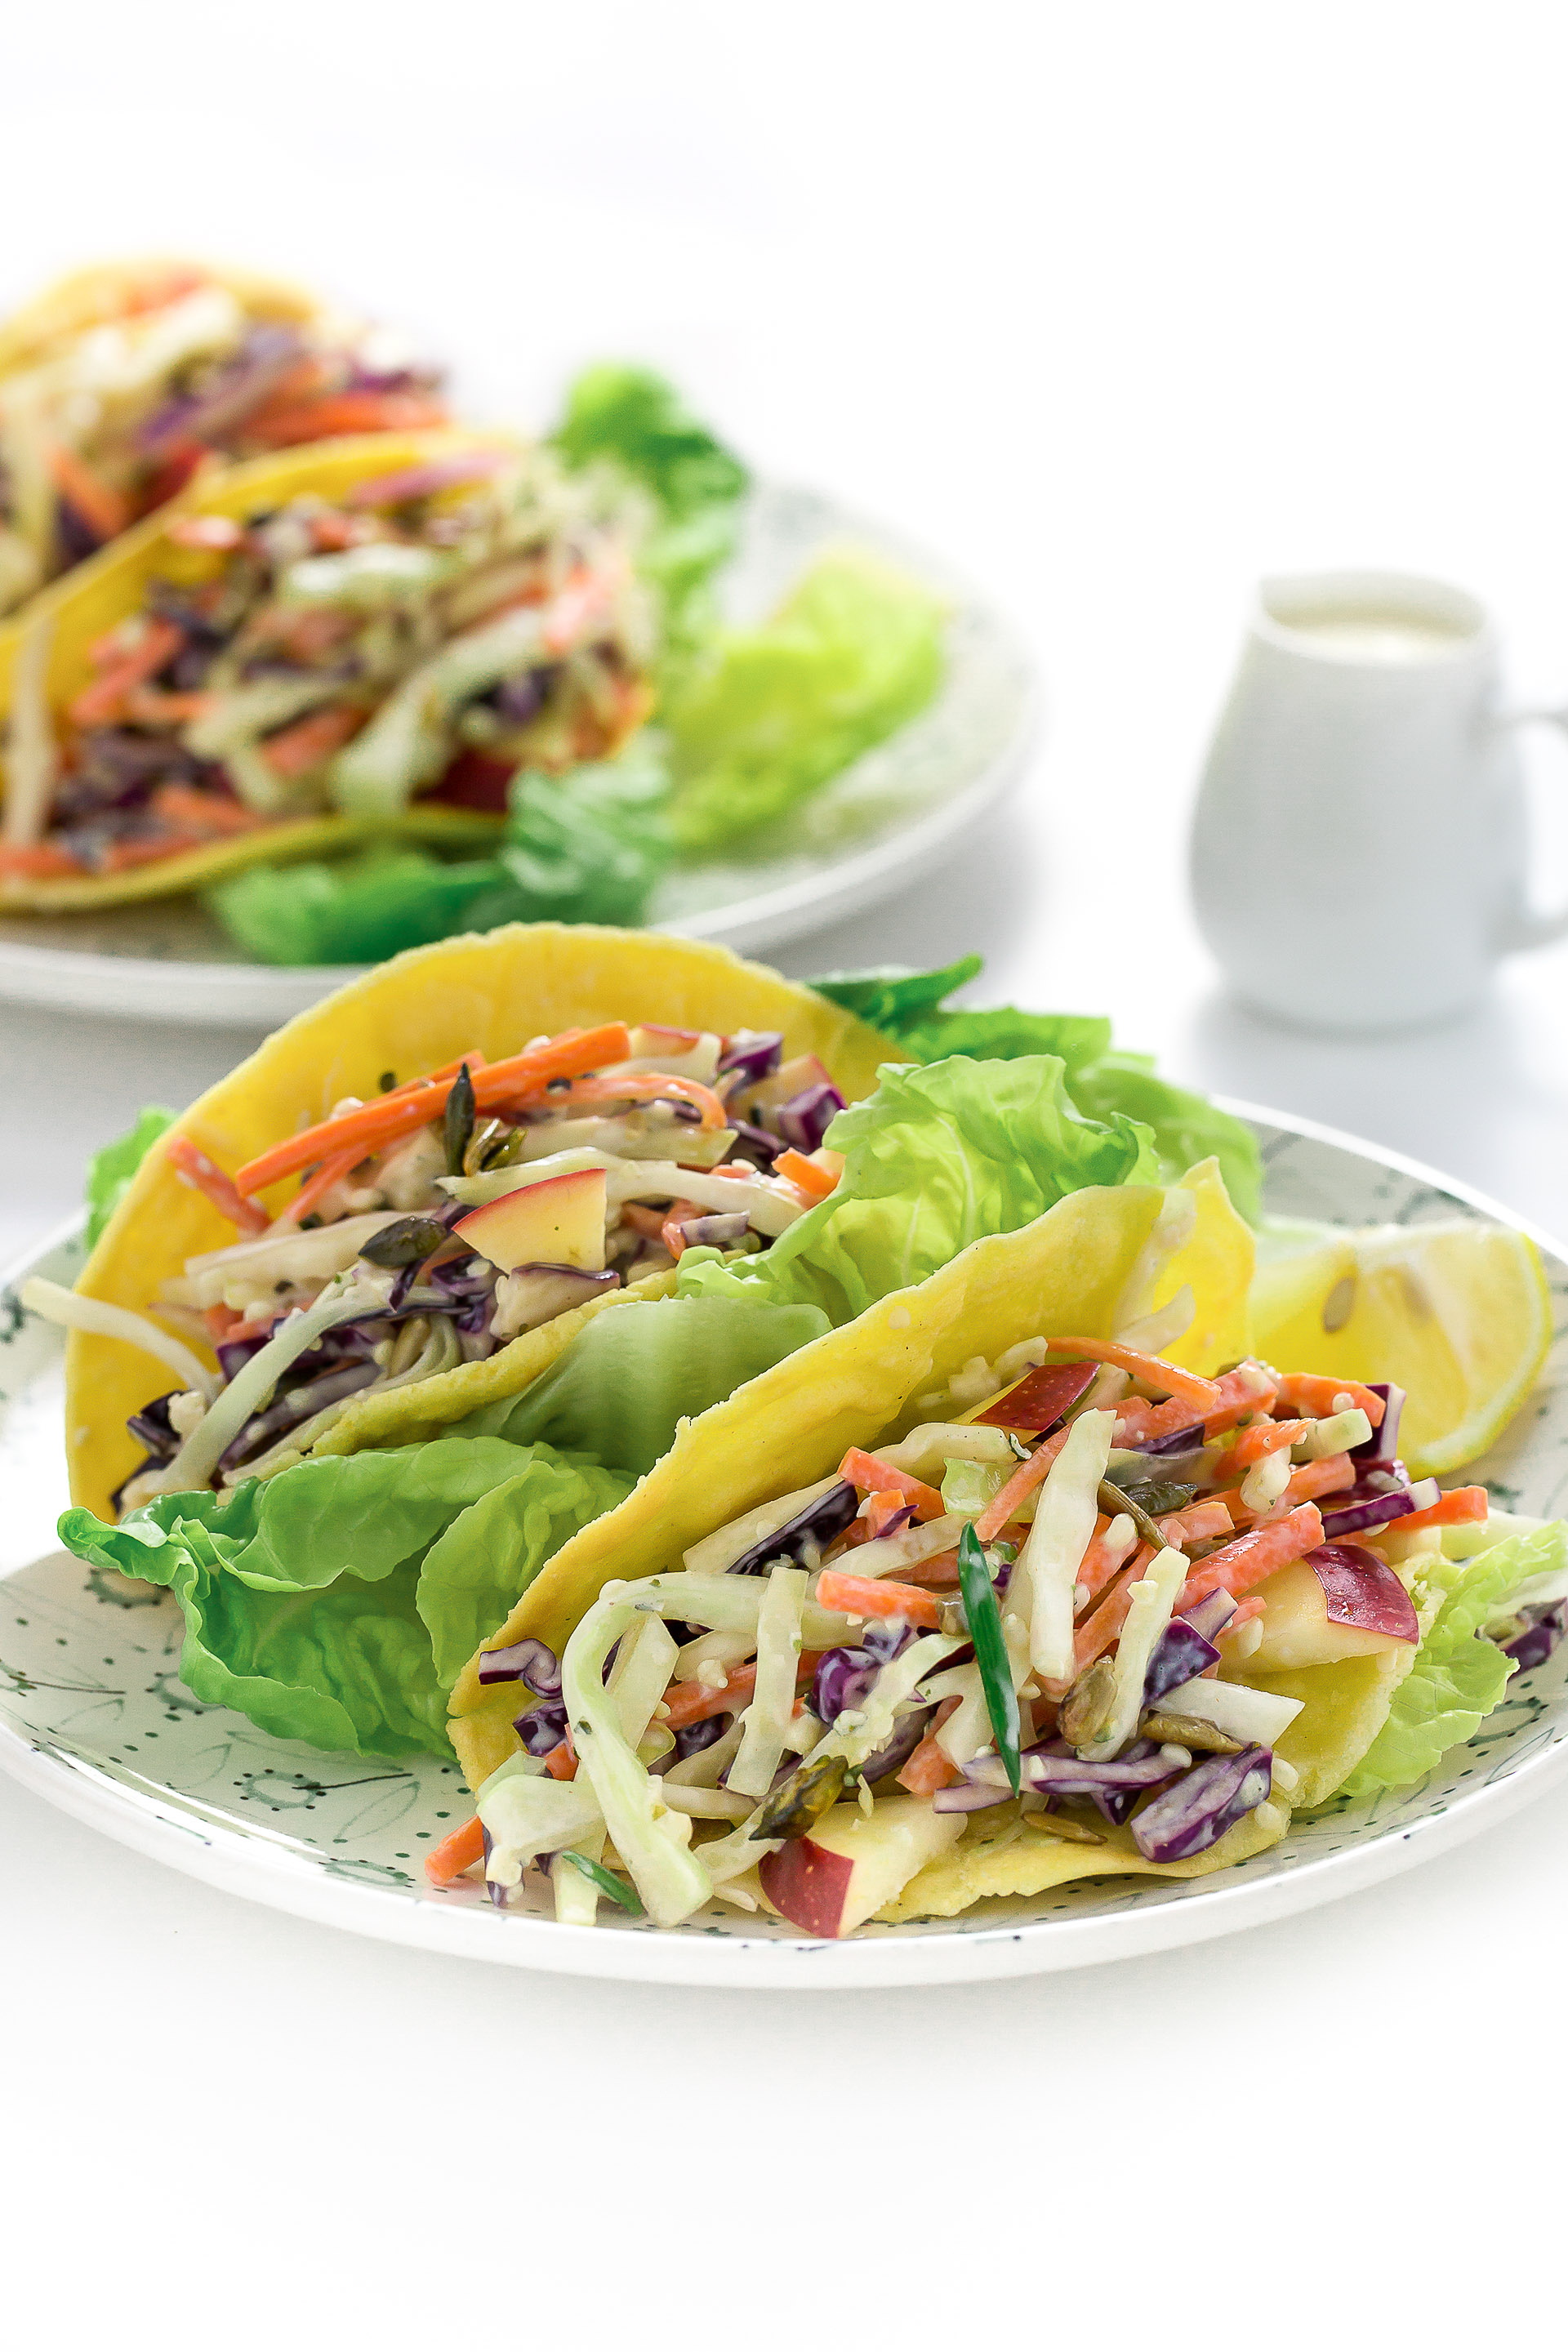 ricetta coleslaw light con tacos e dressing allo yogurt - insalata cavolo cappuccio e carote- vegan coleslaw tacos recipe with yogurt dressing